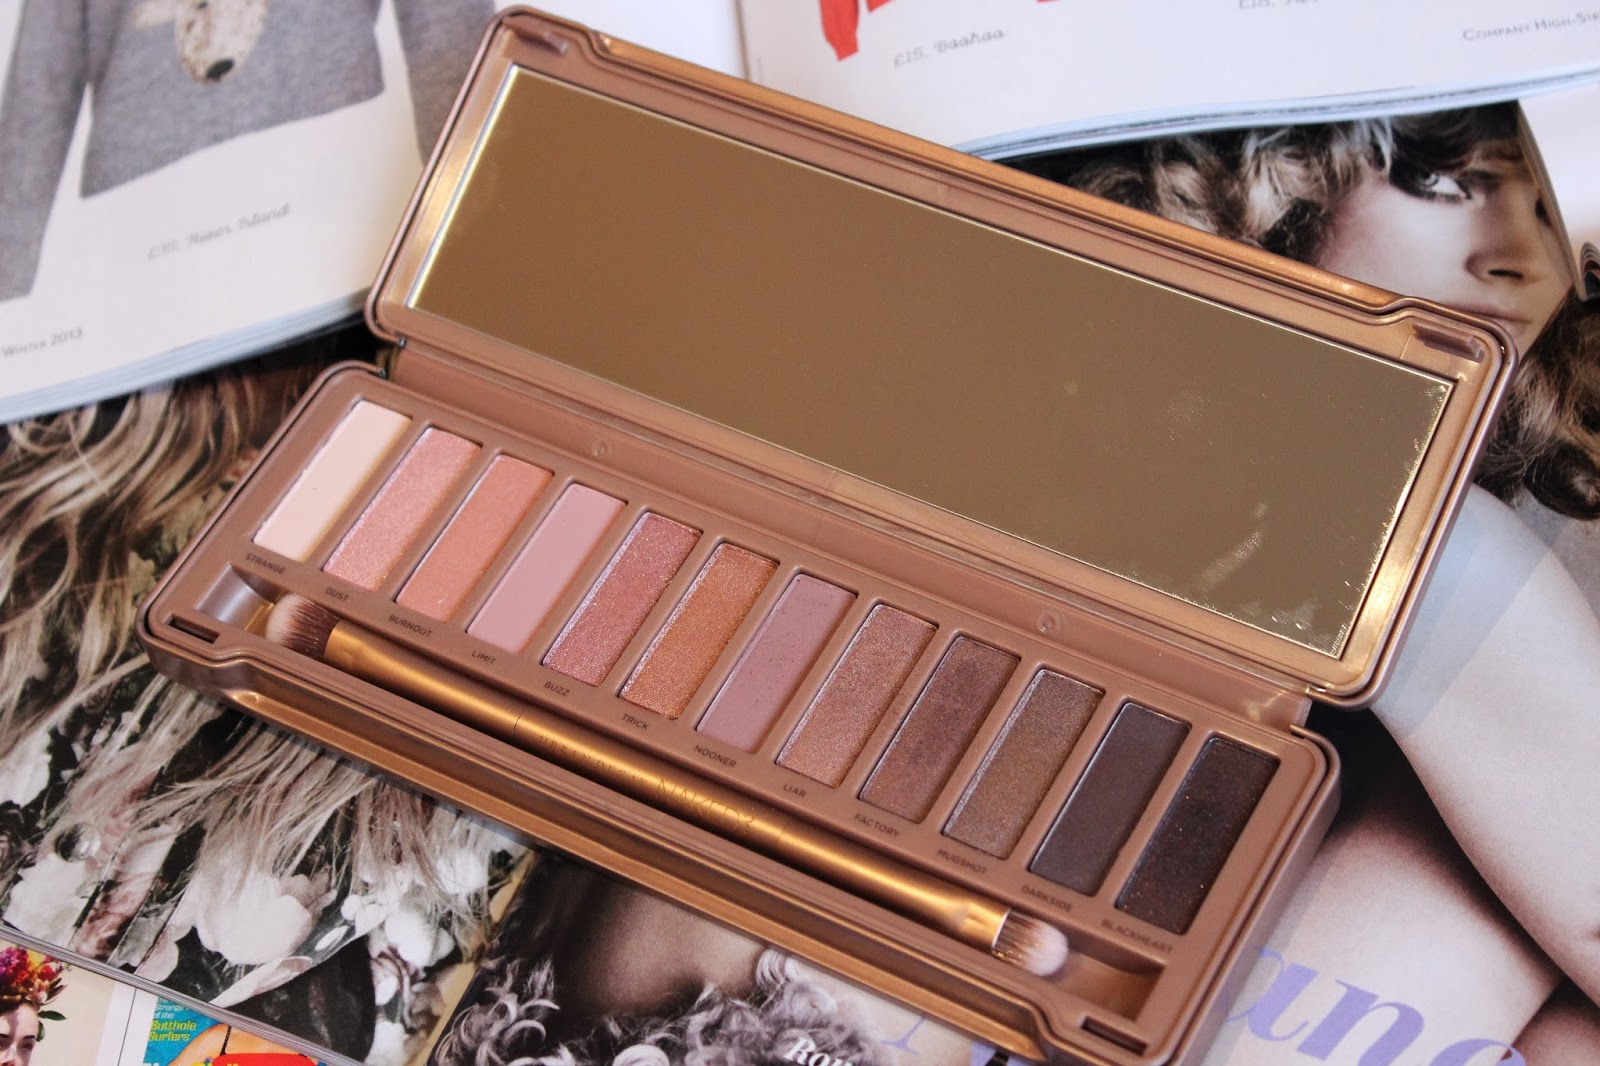 Naked 4 palette release date images 204